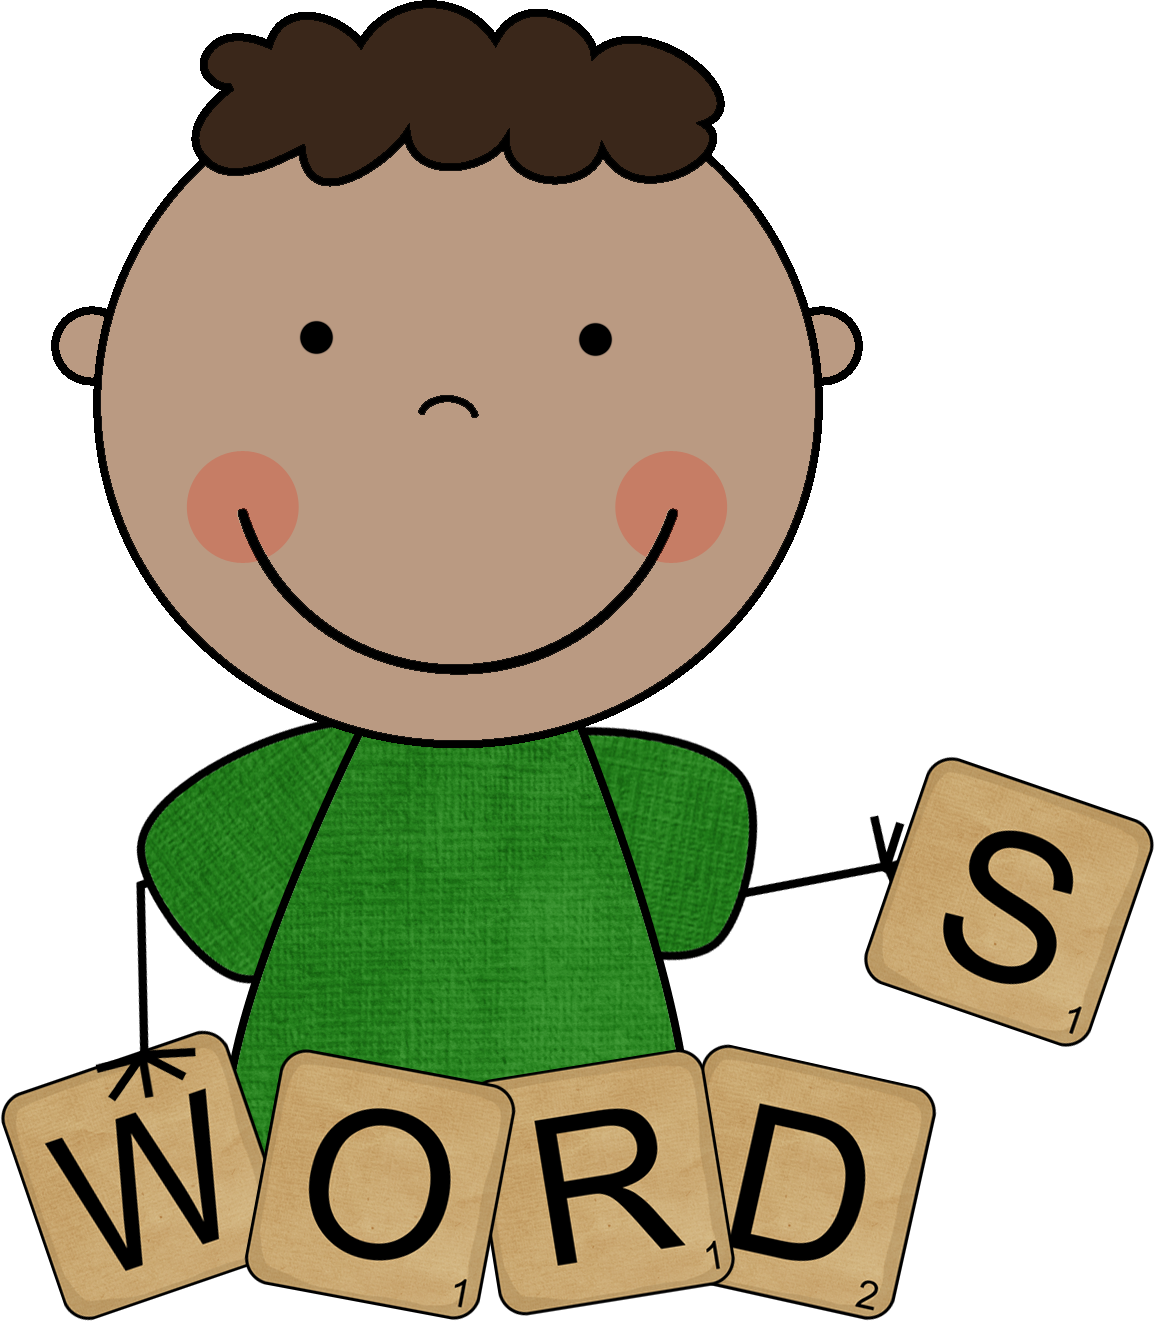 Kind words clipart picture transparent stock Word Graphics Clipart - Clipart Kid picture transparent stock